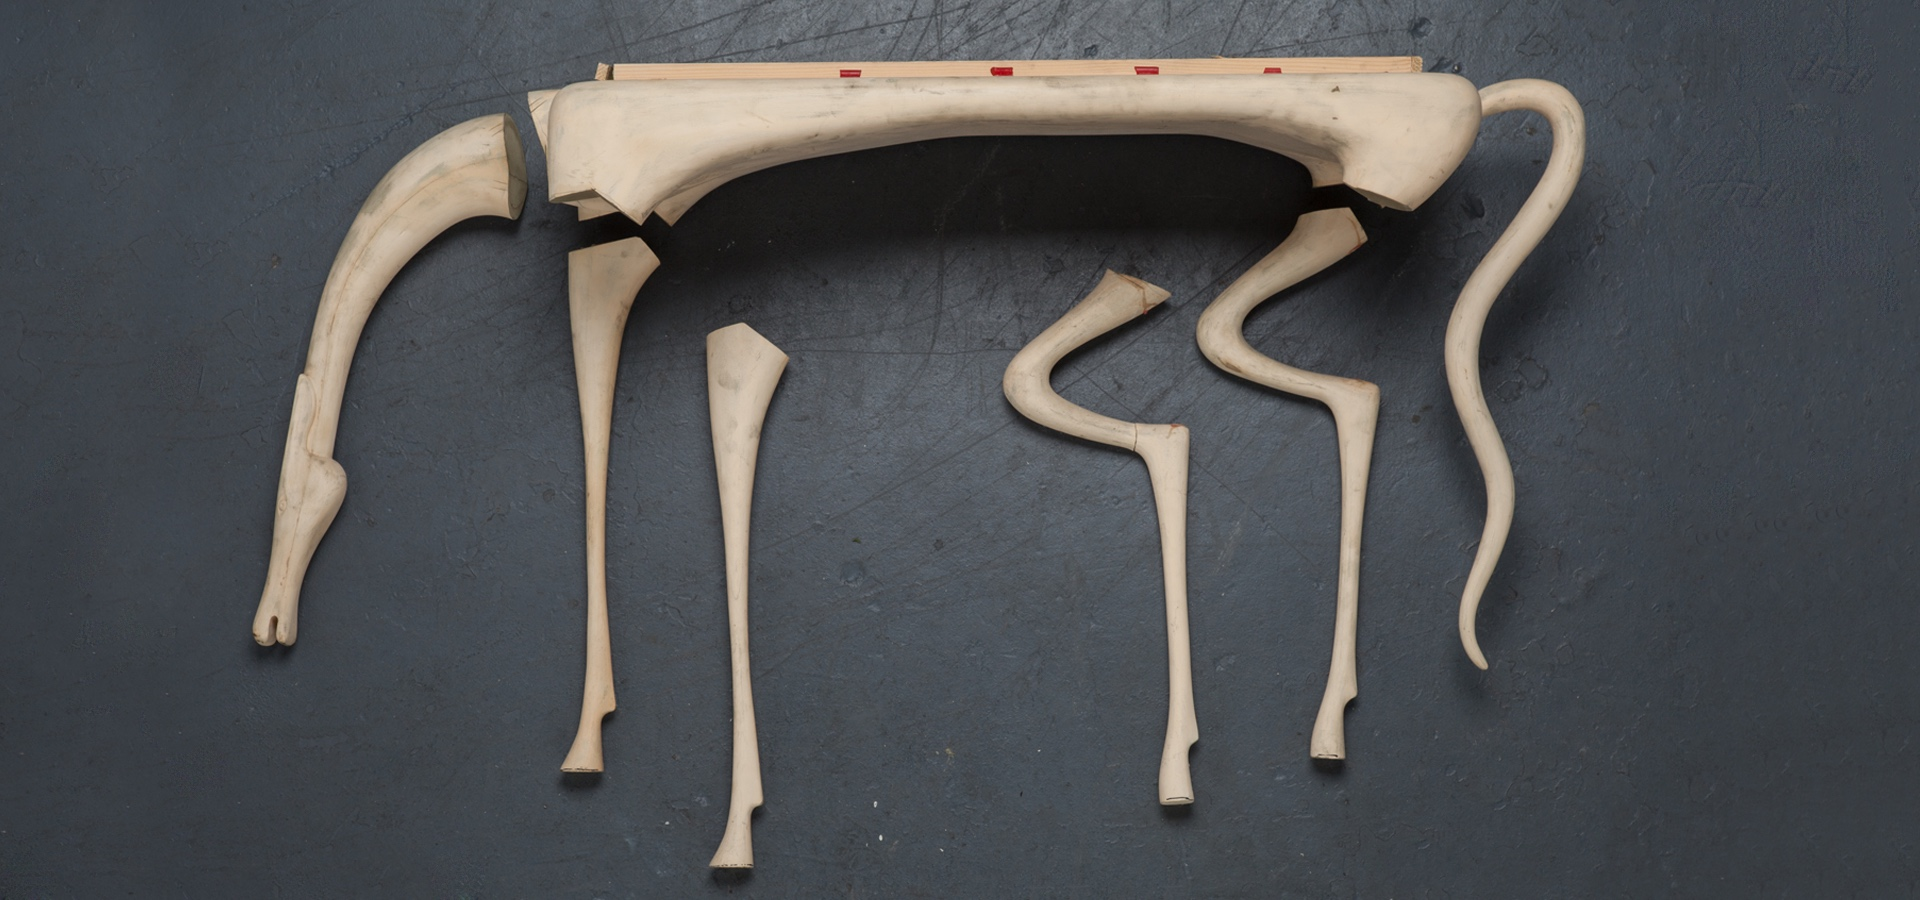 Disassembled sculpture of a long-legged animal